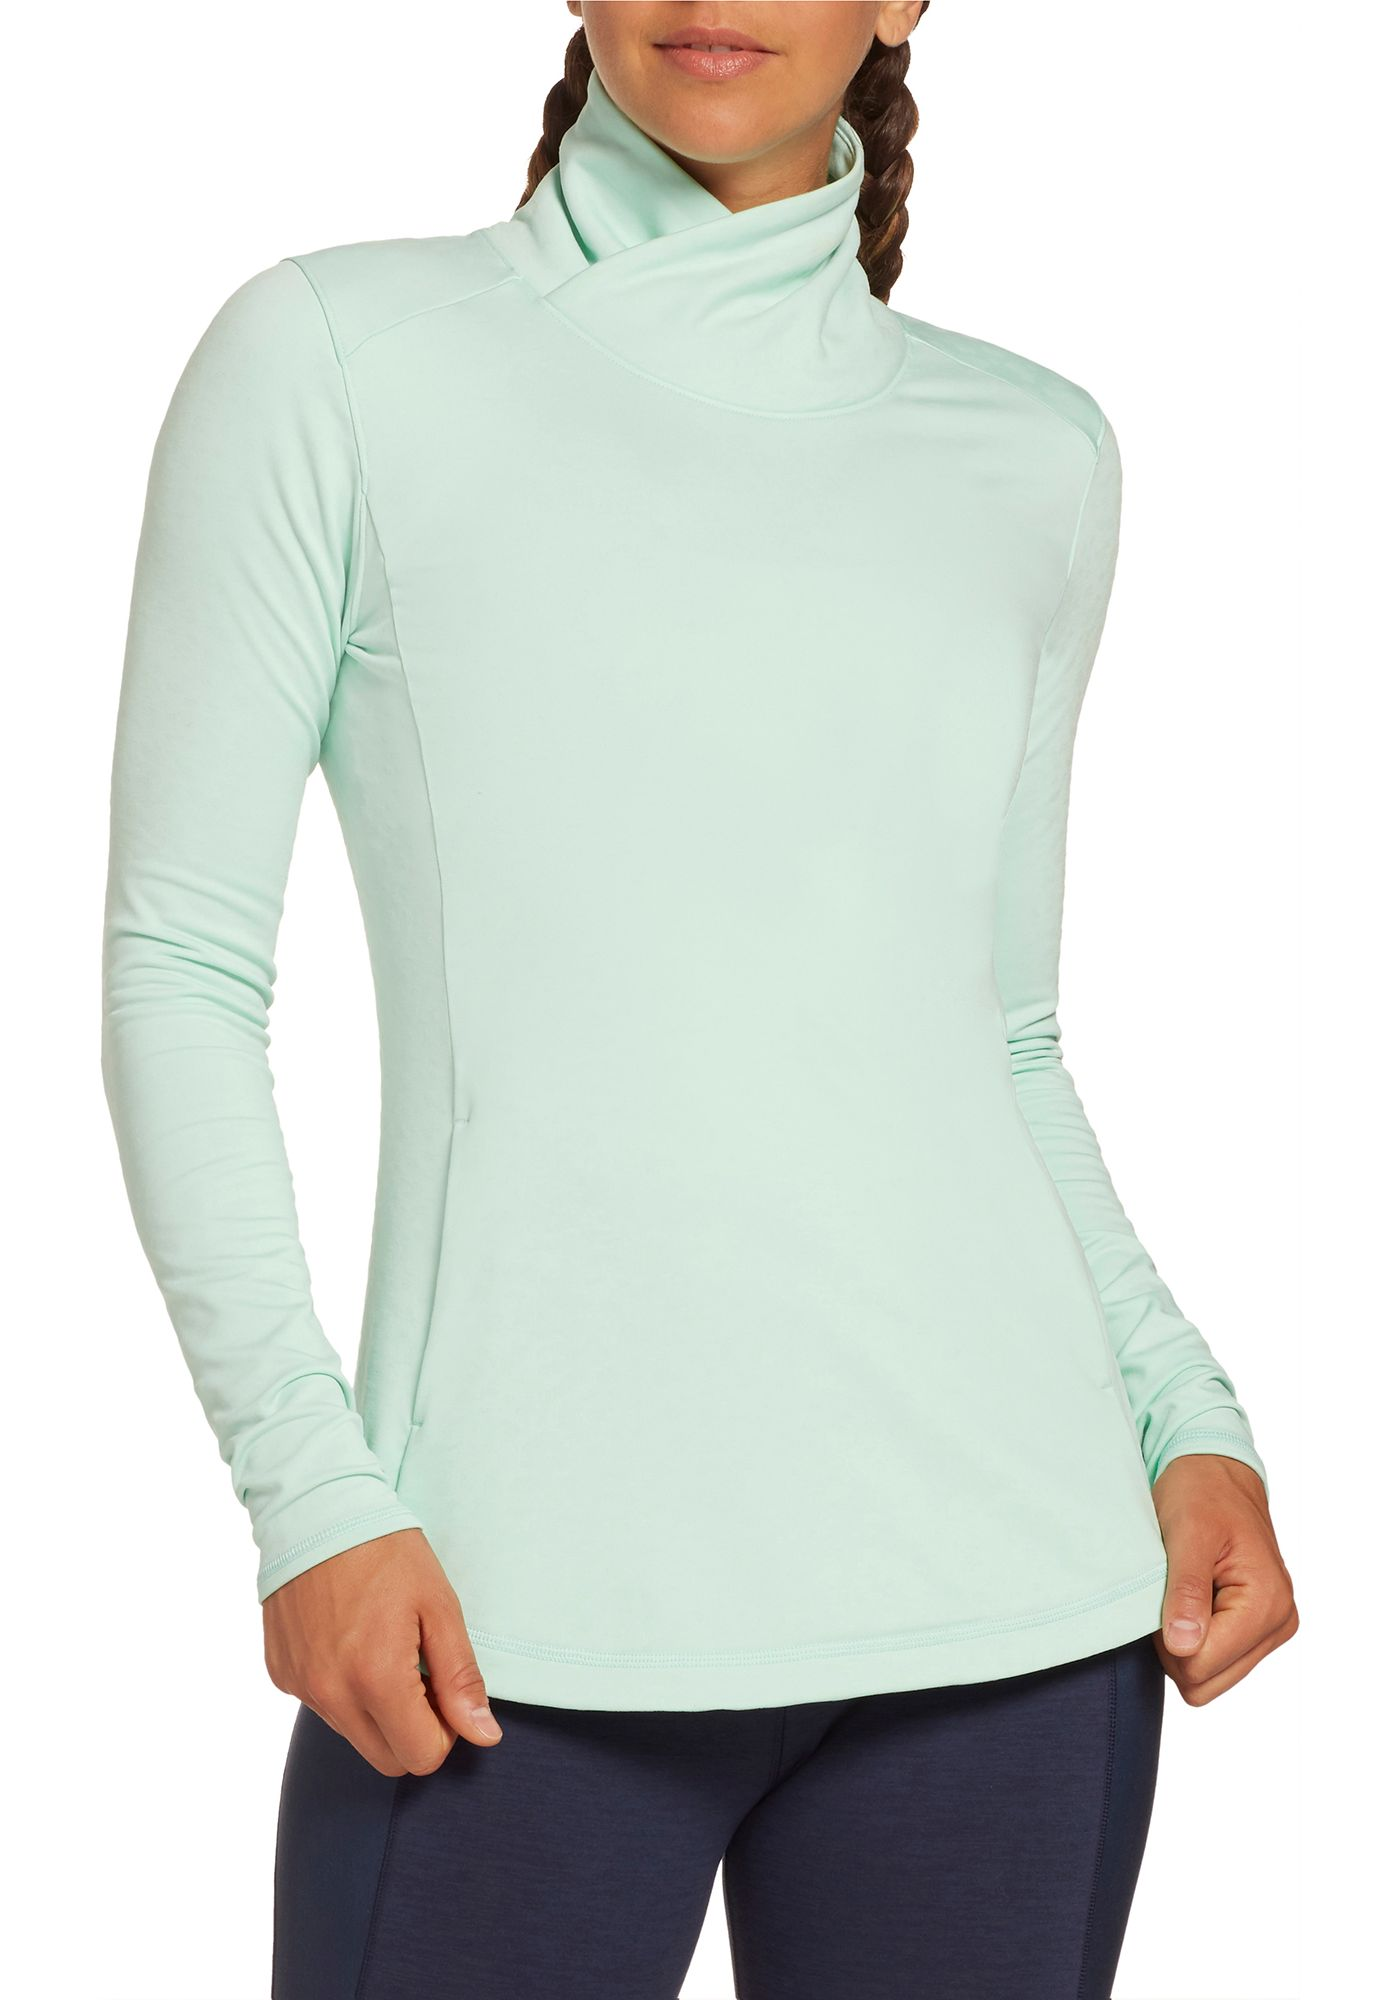 CALIA by Carrie Underwood Women's Warm Long Sleeve Shirt